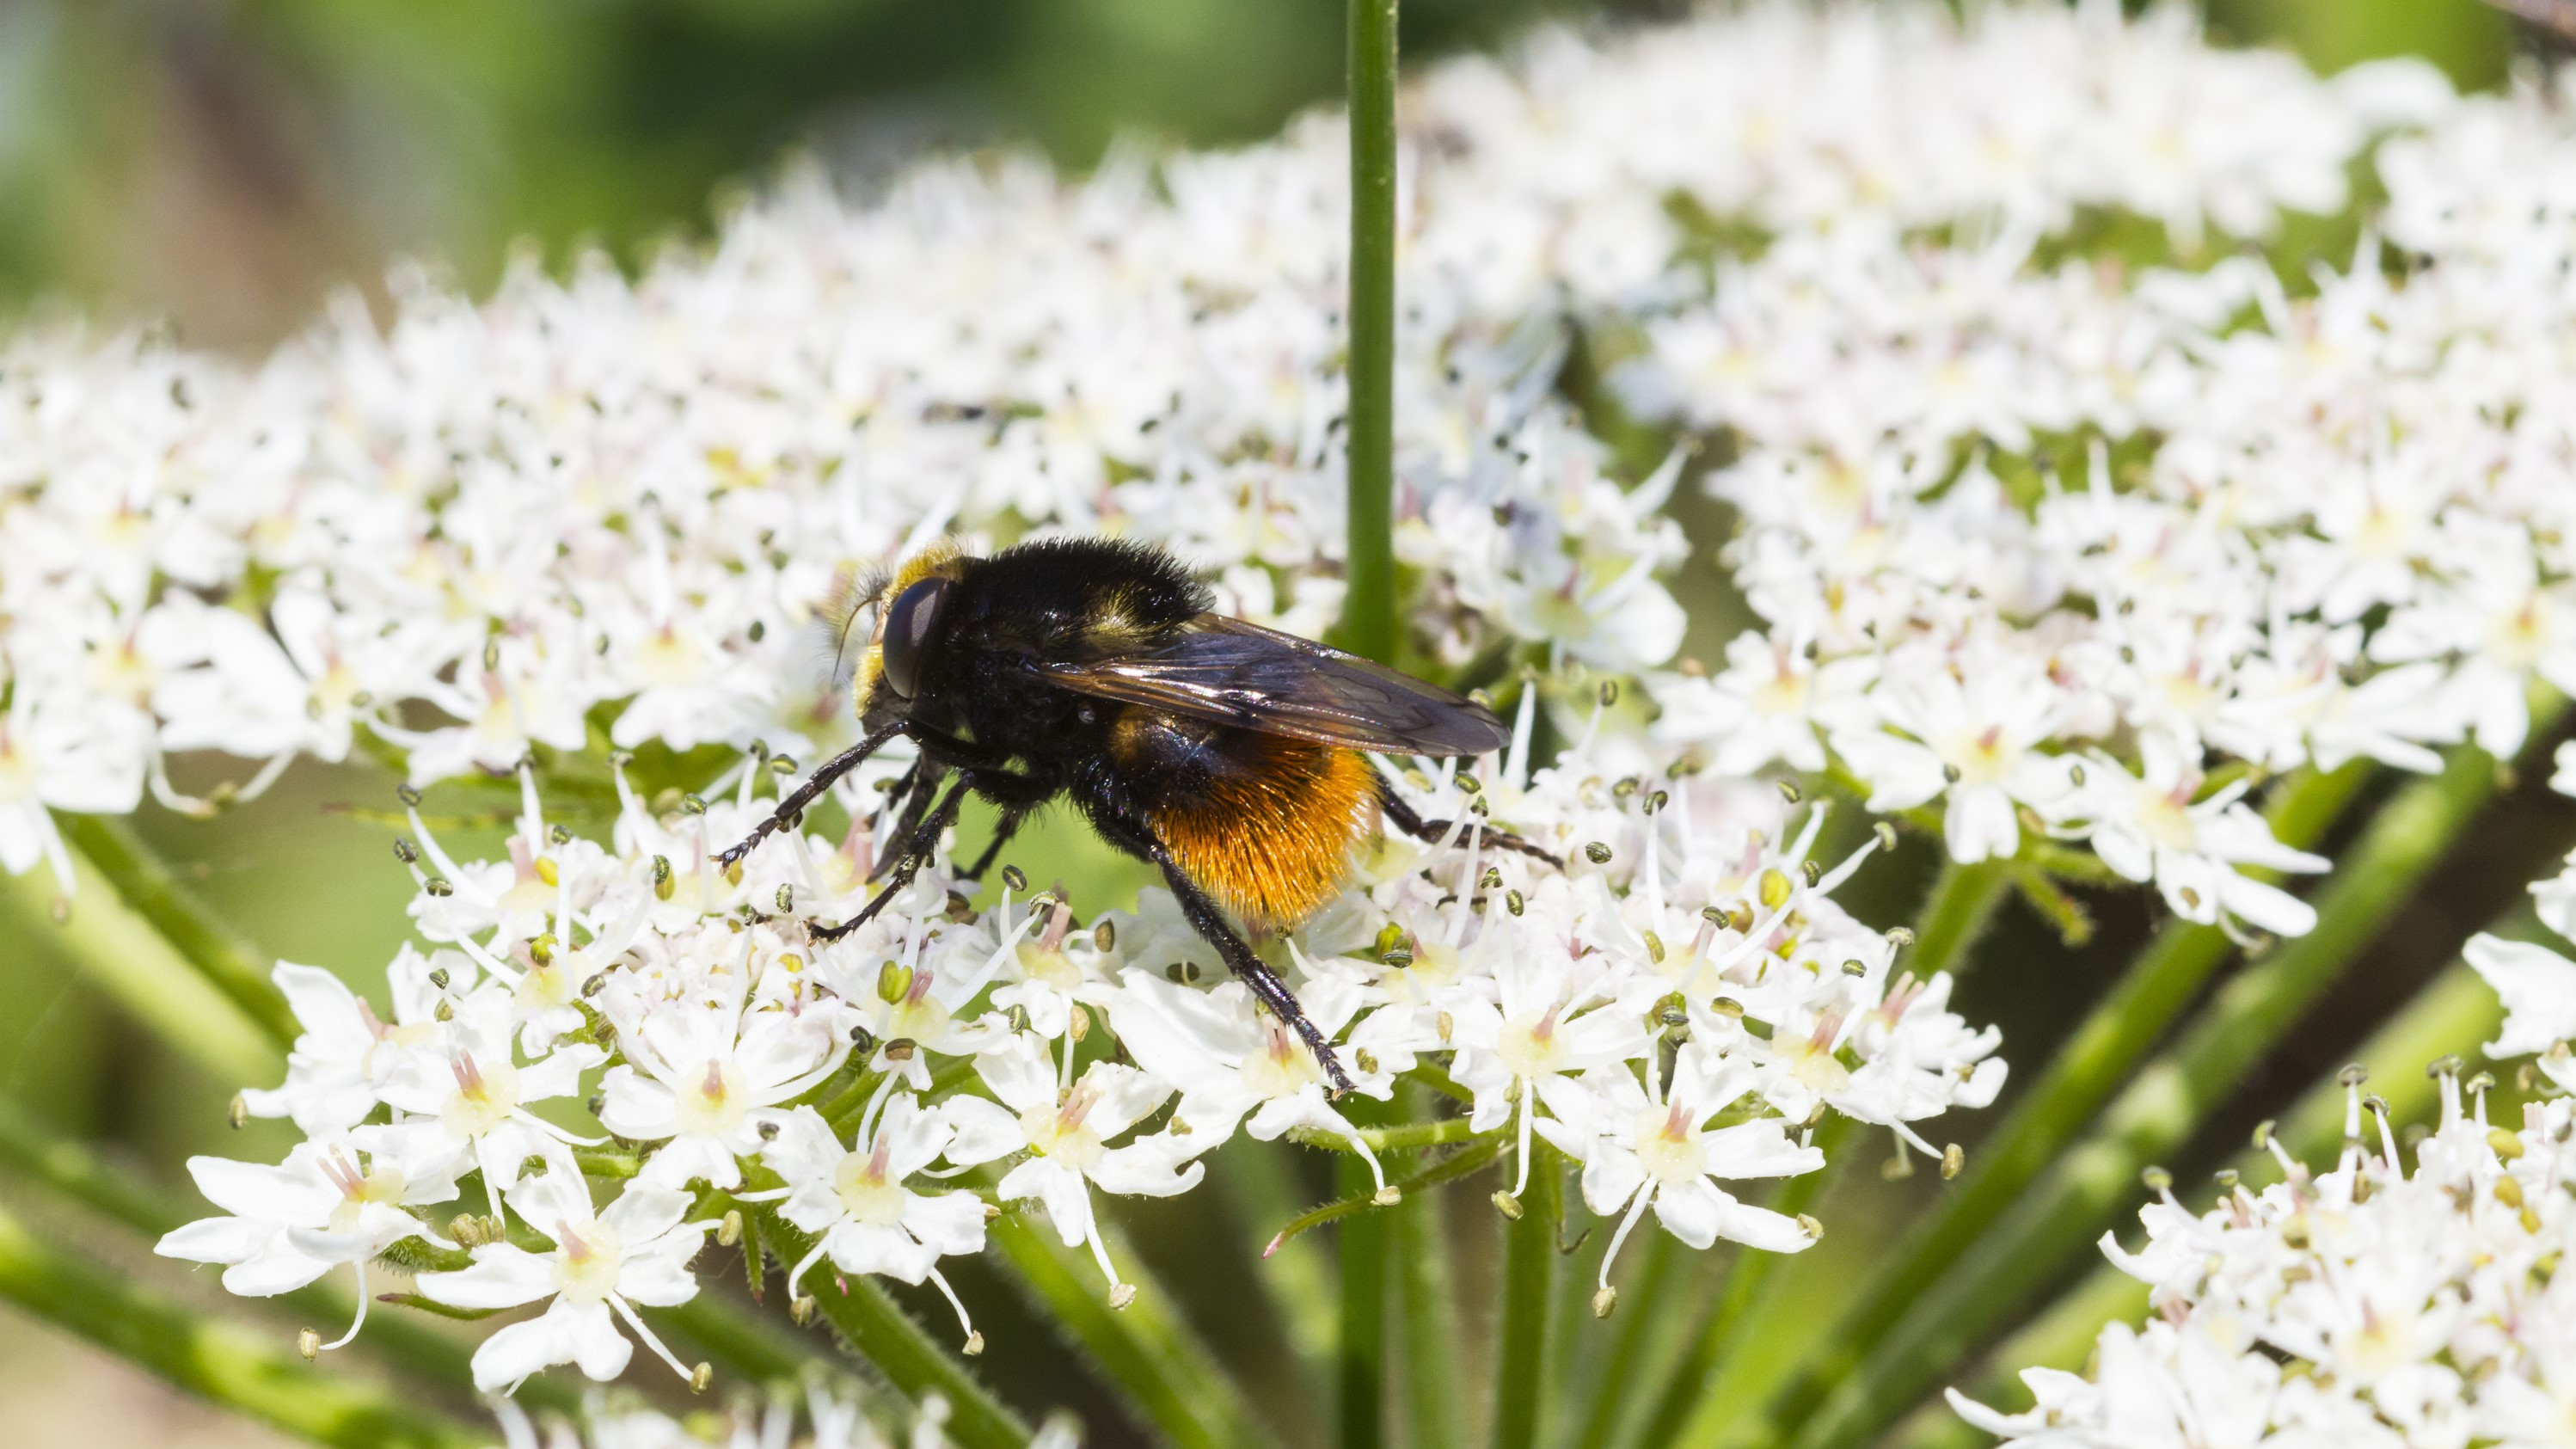 Attract Bees - Attract bumblebees - Red-Tailed-Bumble-Bee. (Bombus lapidarius)